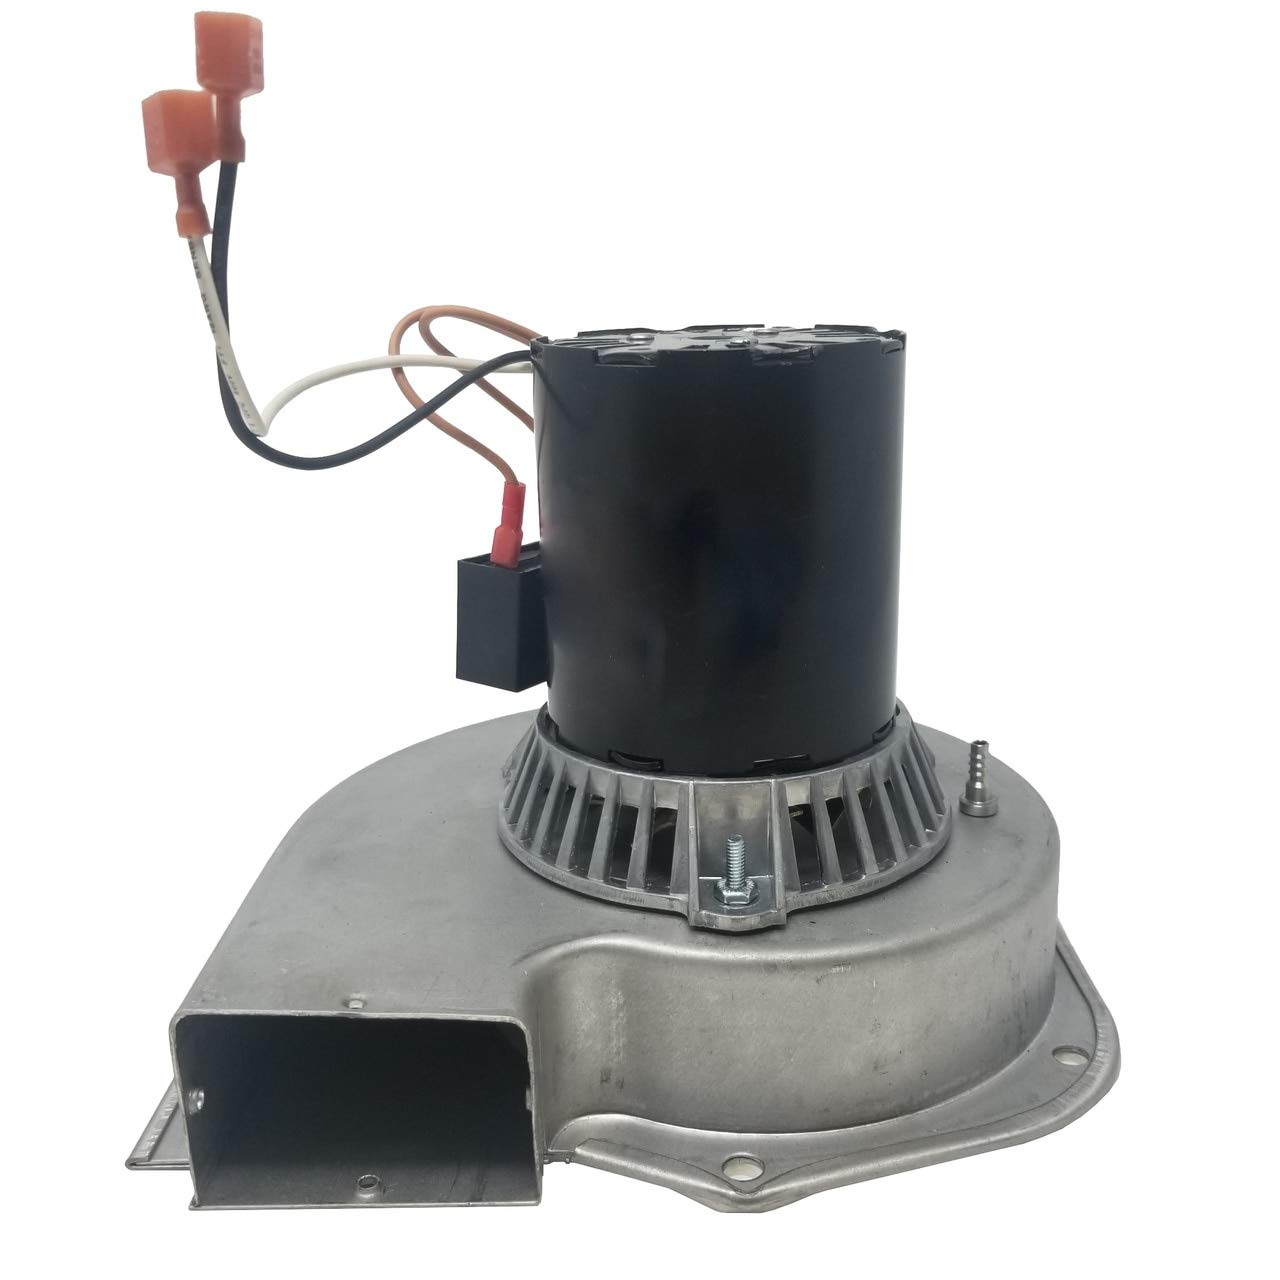 3.3 Inch Diameter Permanent Split Capacitor Centrifugal Blower | Replaces: Fasco A241 & Rheem/Ruud 7021-9567, 70-23641-81 by P-Tech (Image #3)